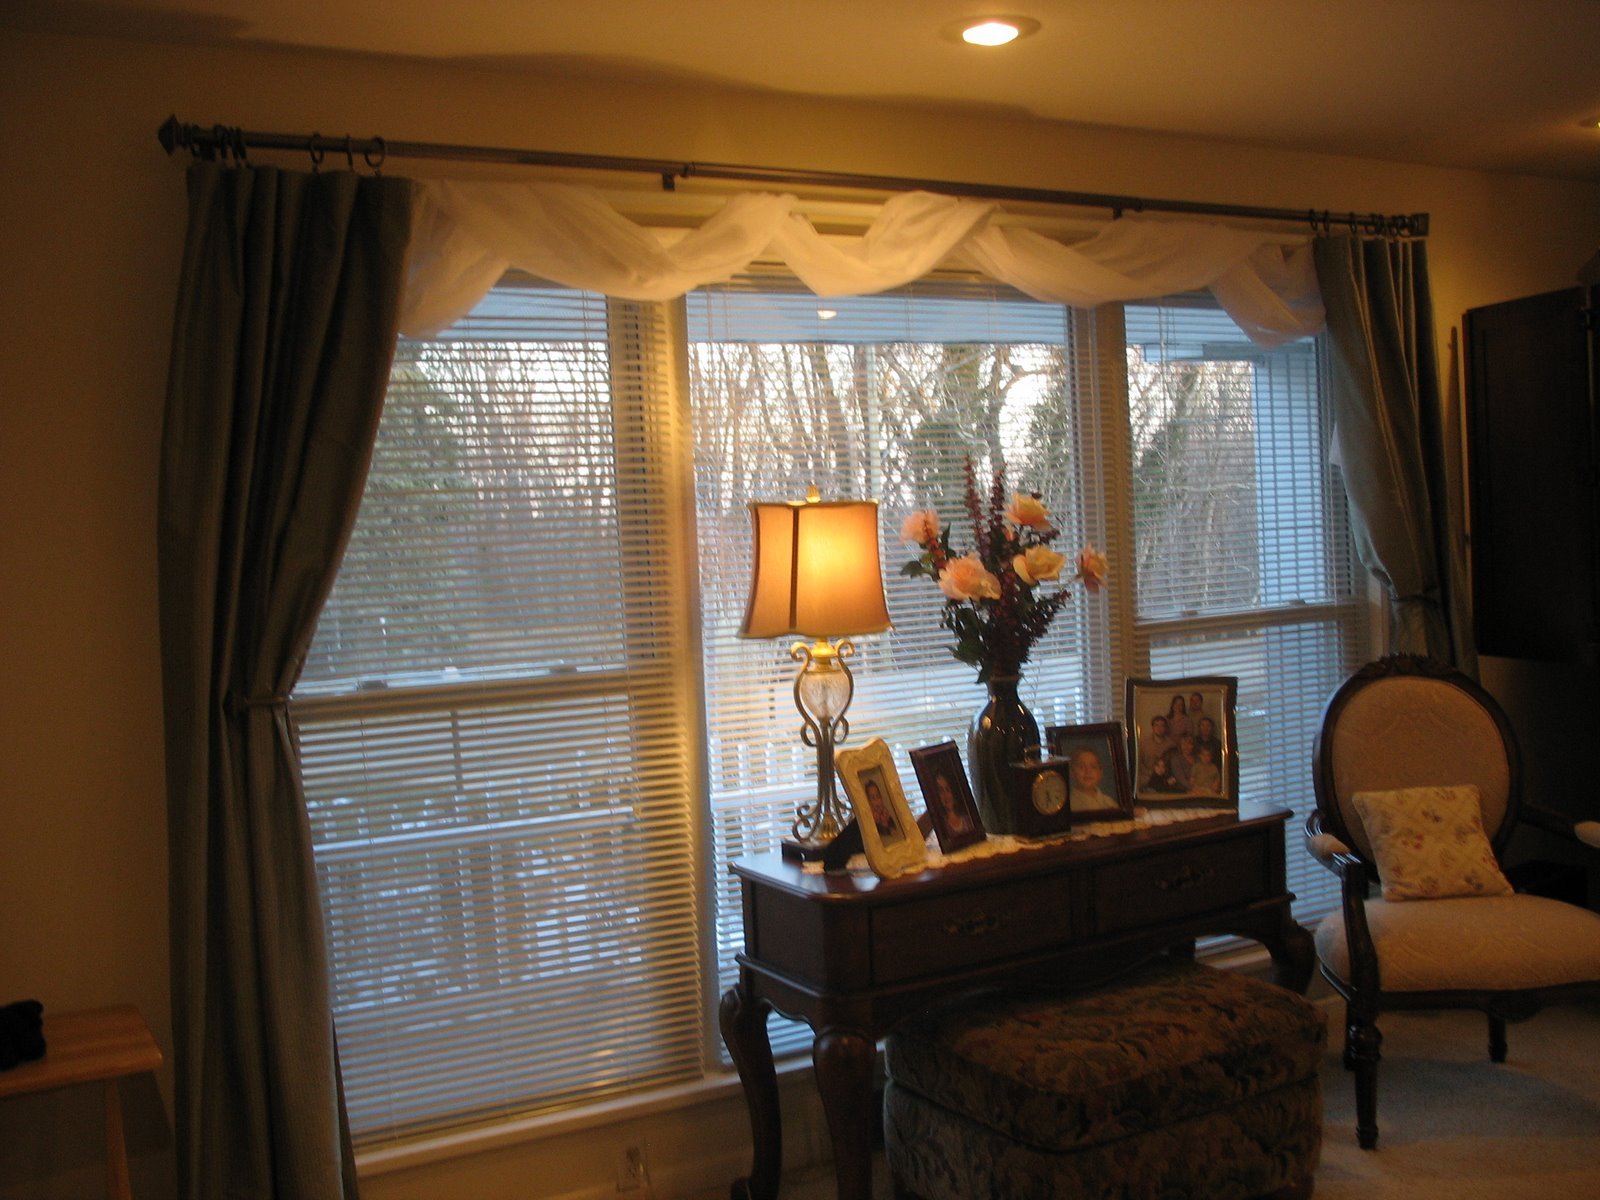 Window Curtain treatment Ideas Large Living Room